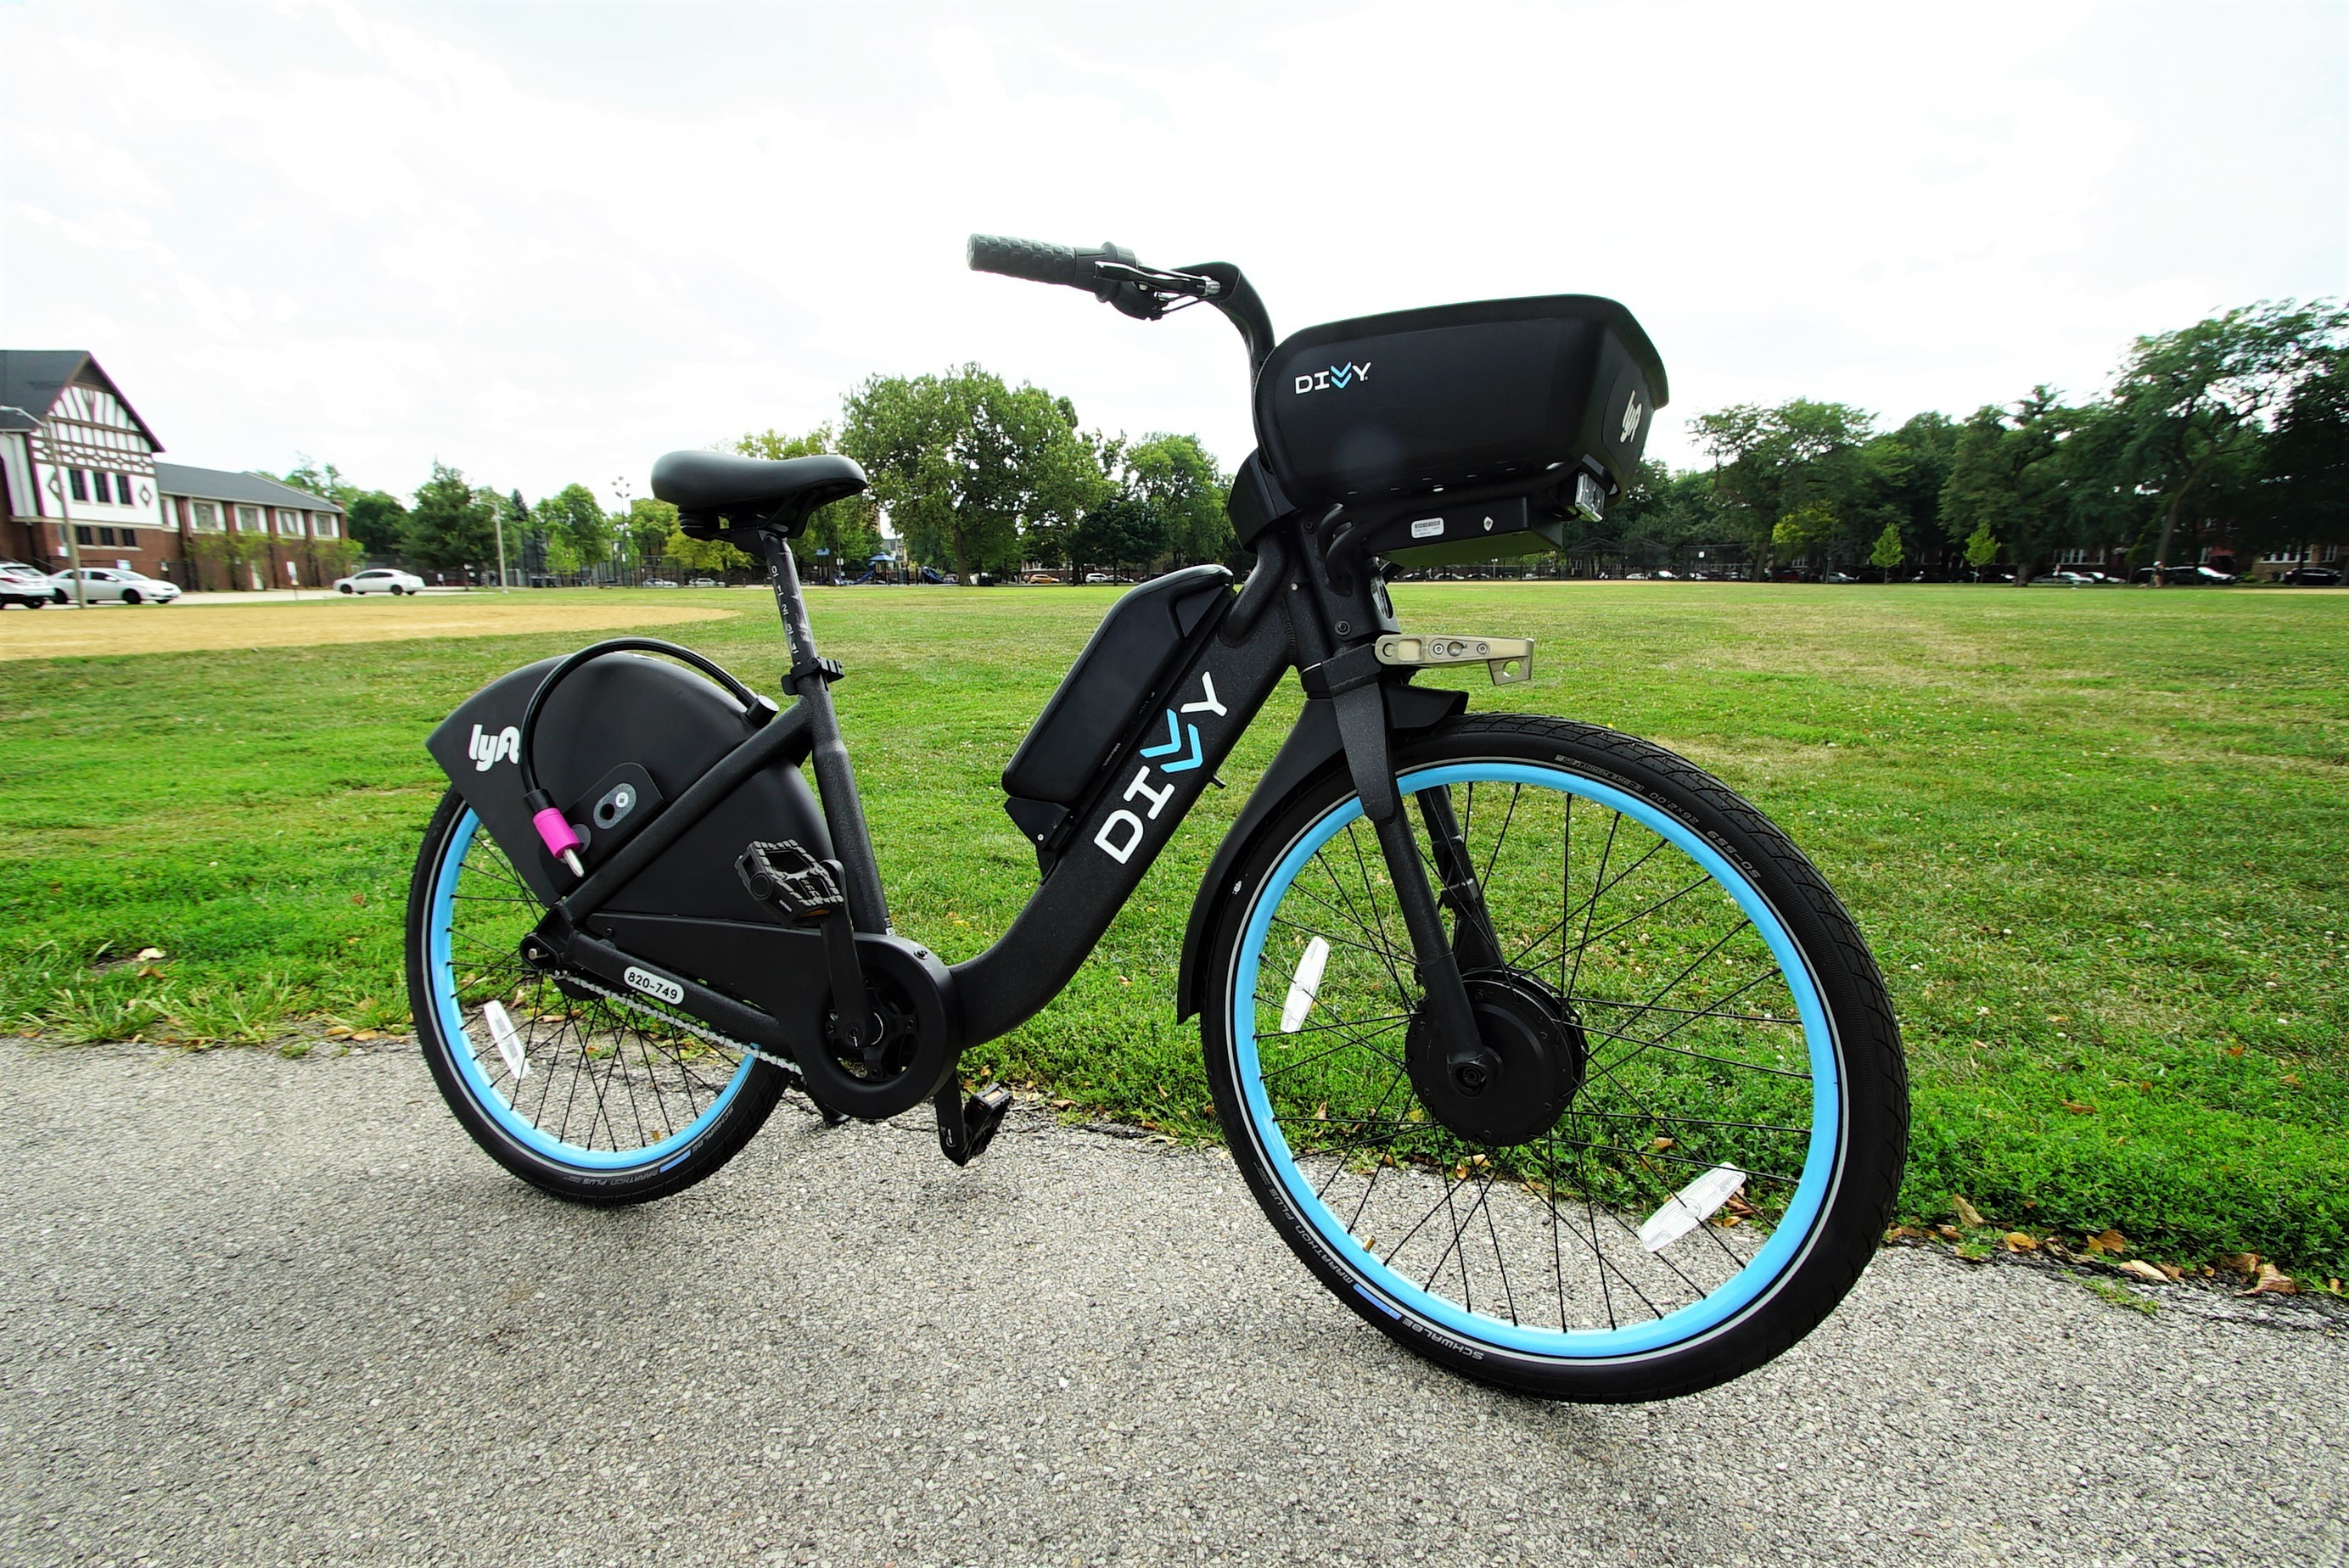 6 takeaways from our first ride on a Divvy e-bike